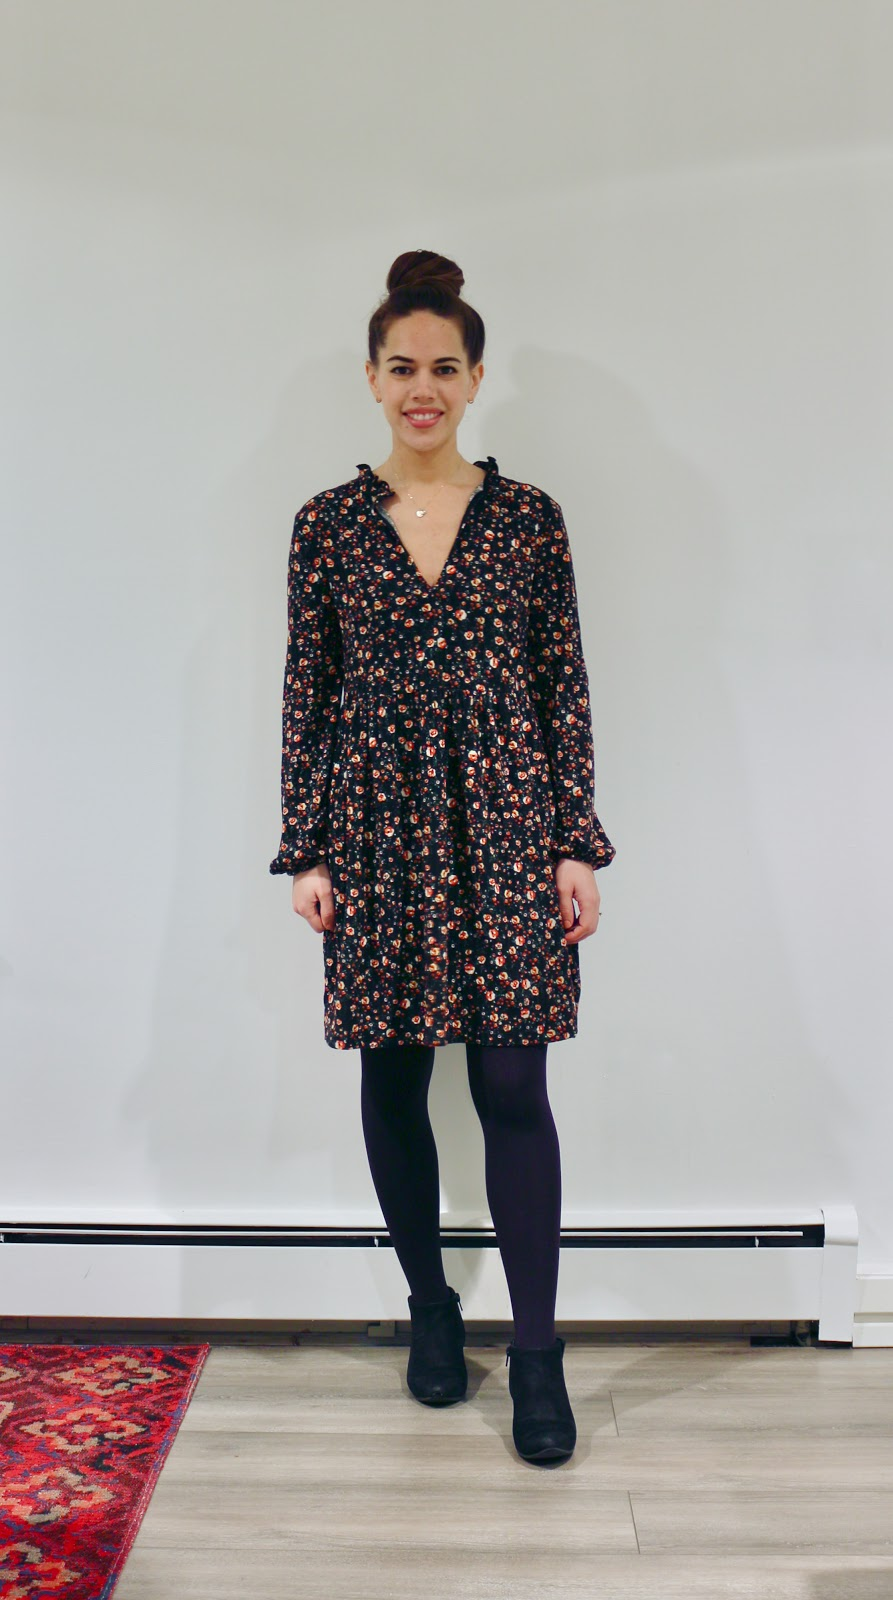 Jules in Flats - Zara Textured Weave Floral Mini Dress (Business Casual Winter Workwear on a Budget)